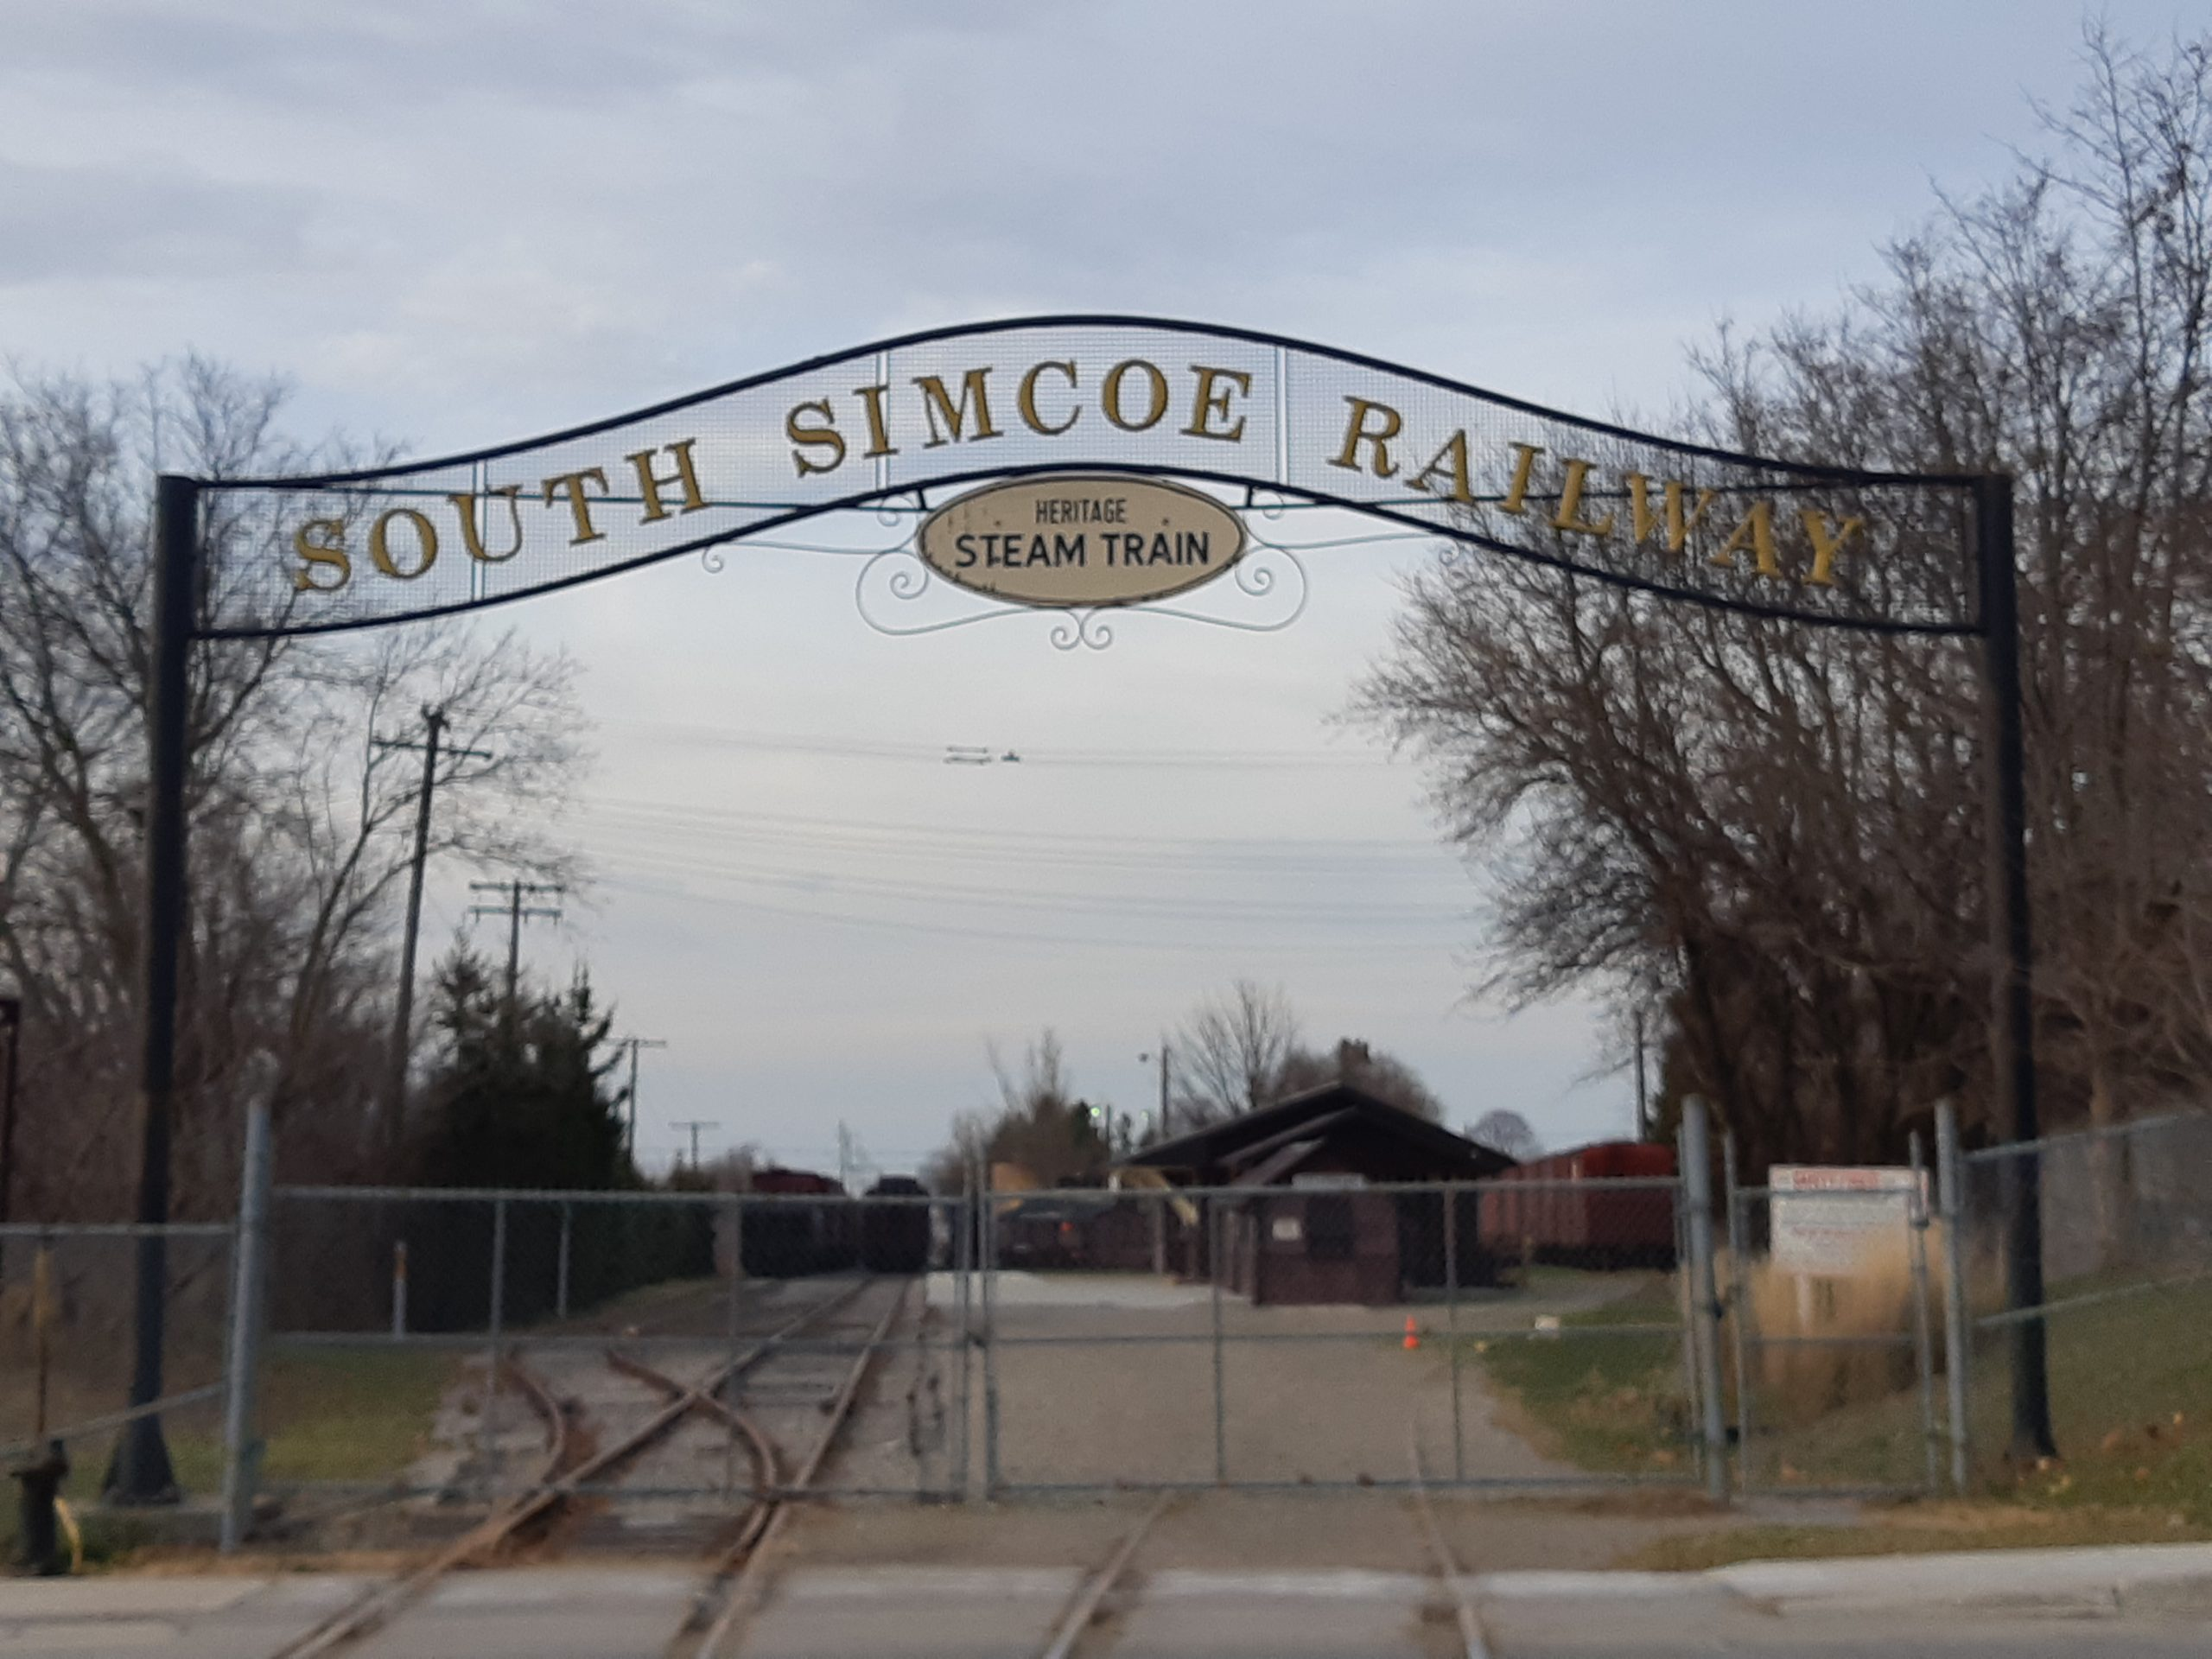 Metal gateway to Simcoe county steam train depot